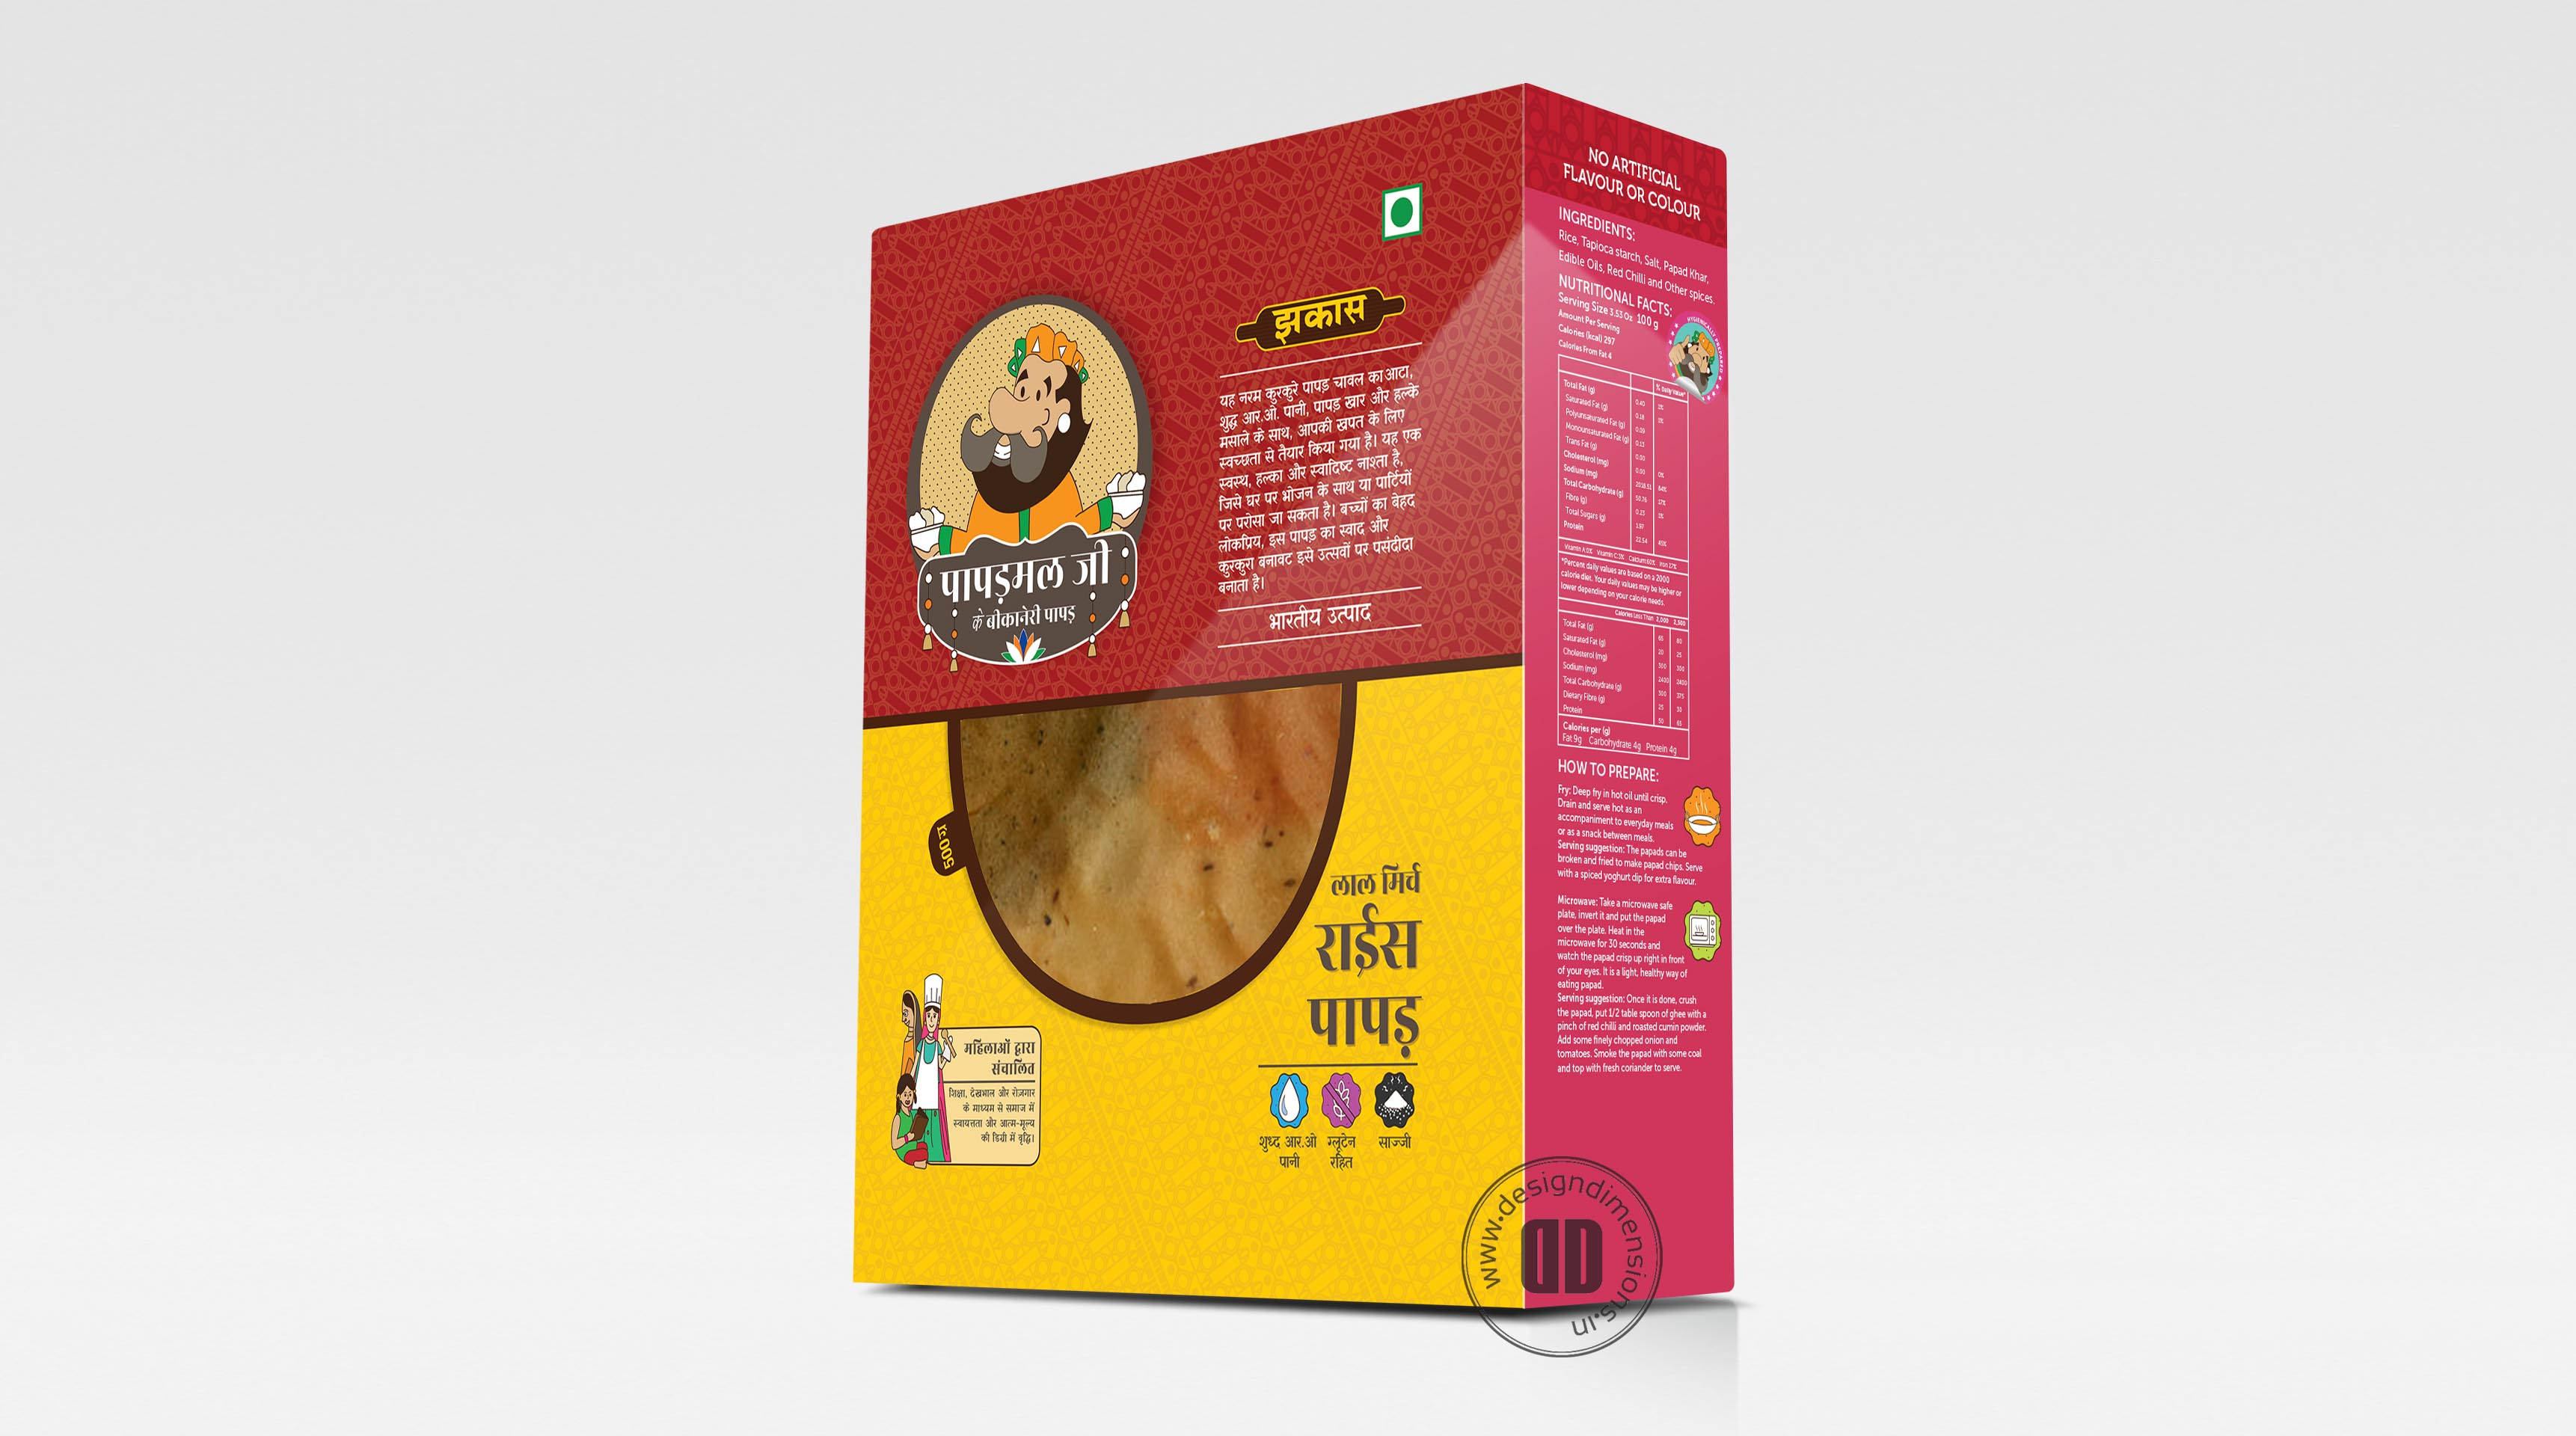 Zhakaas Rice Papad box